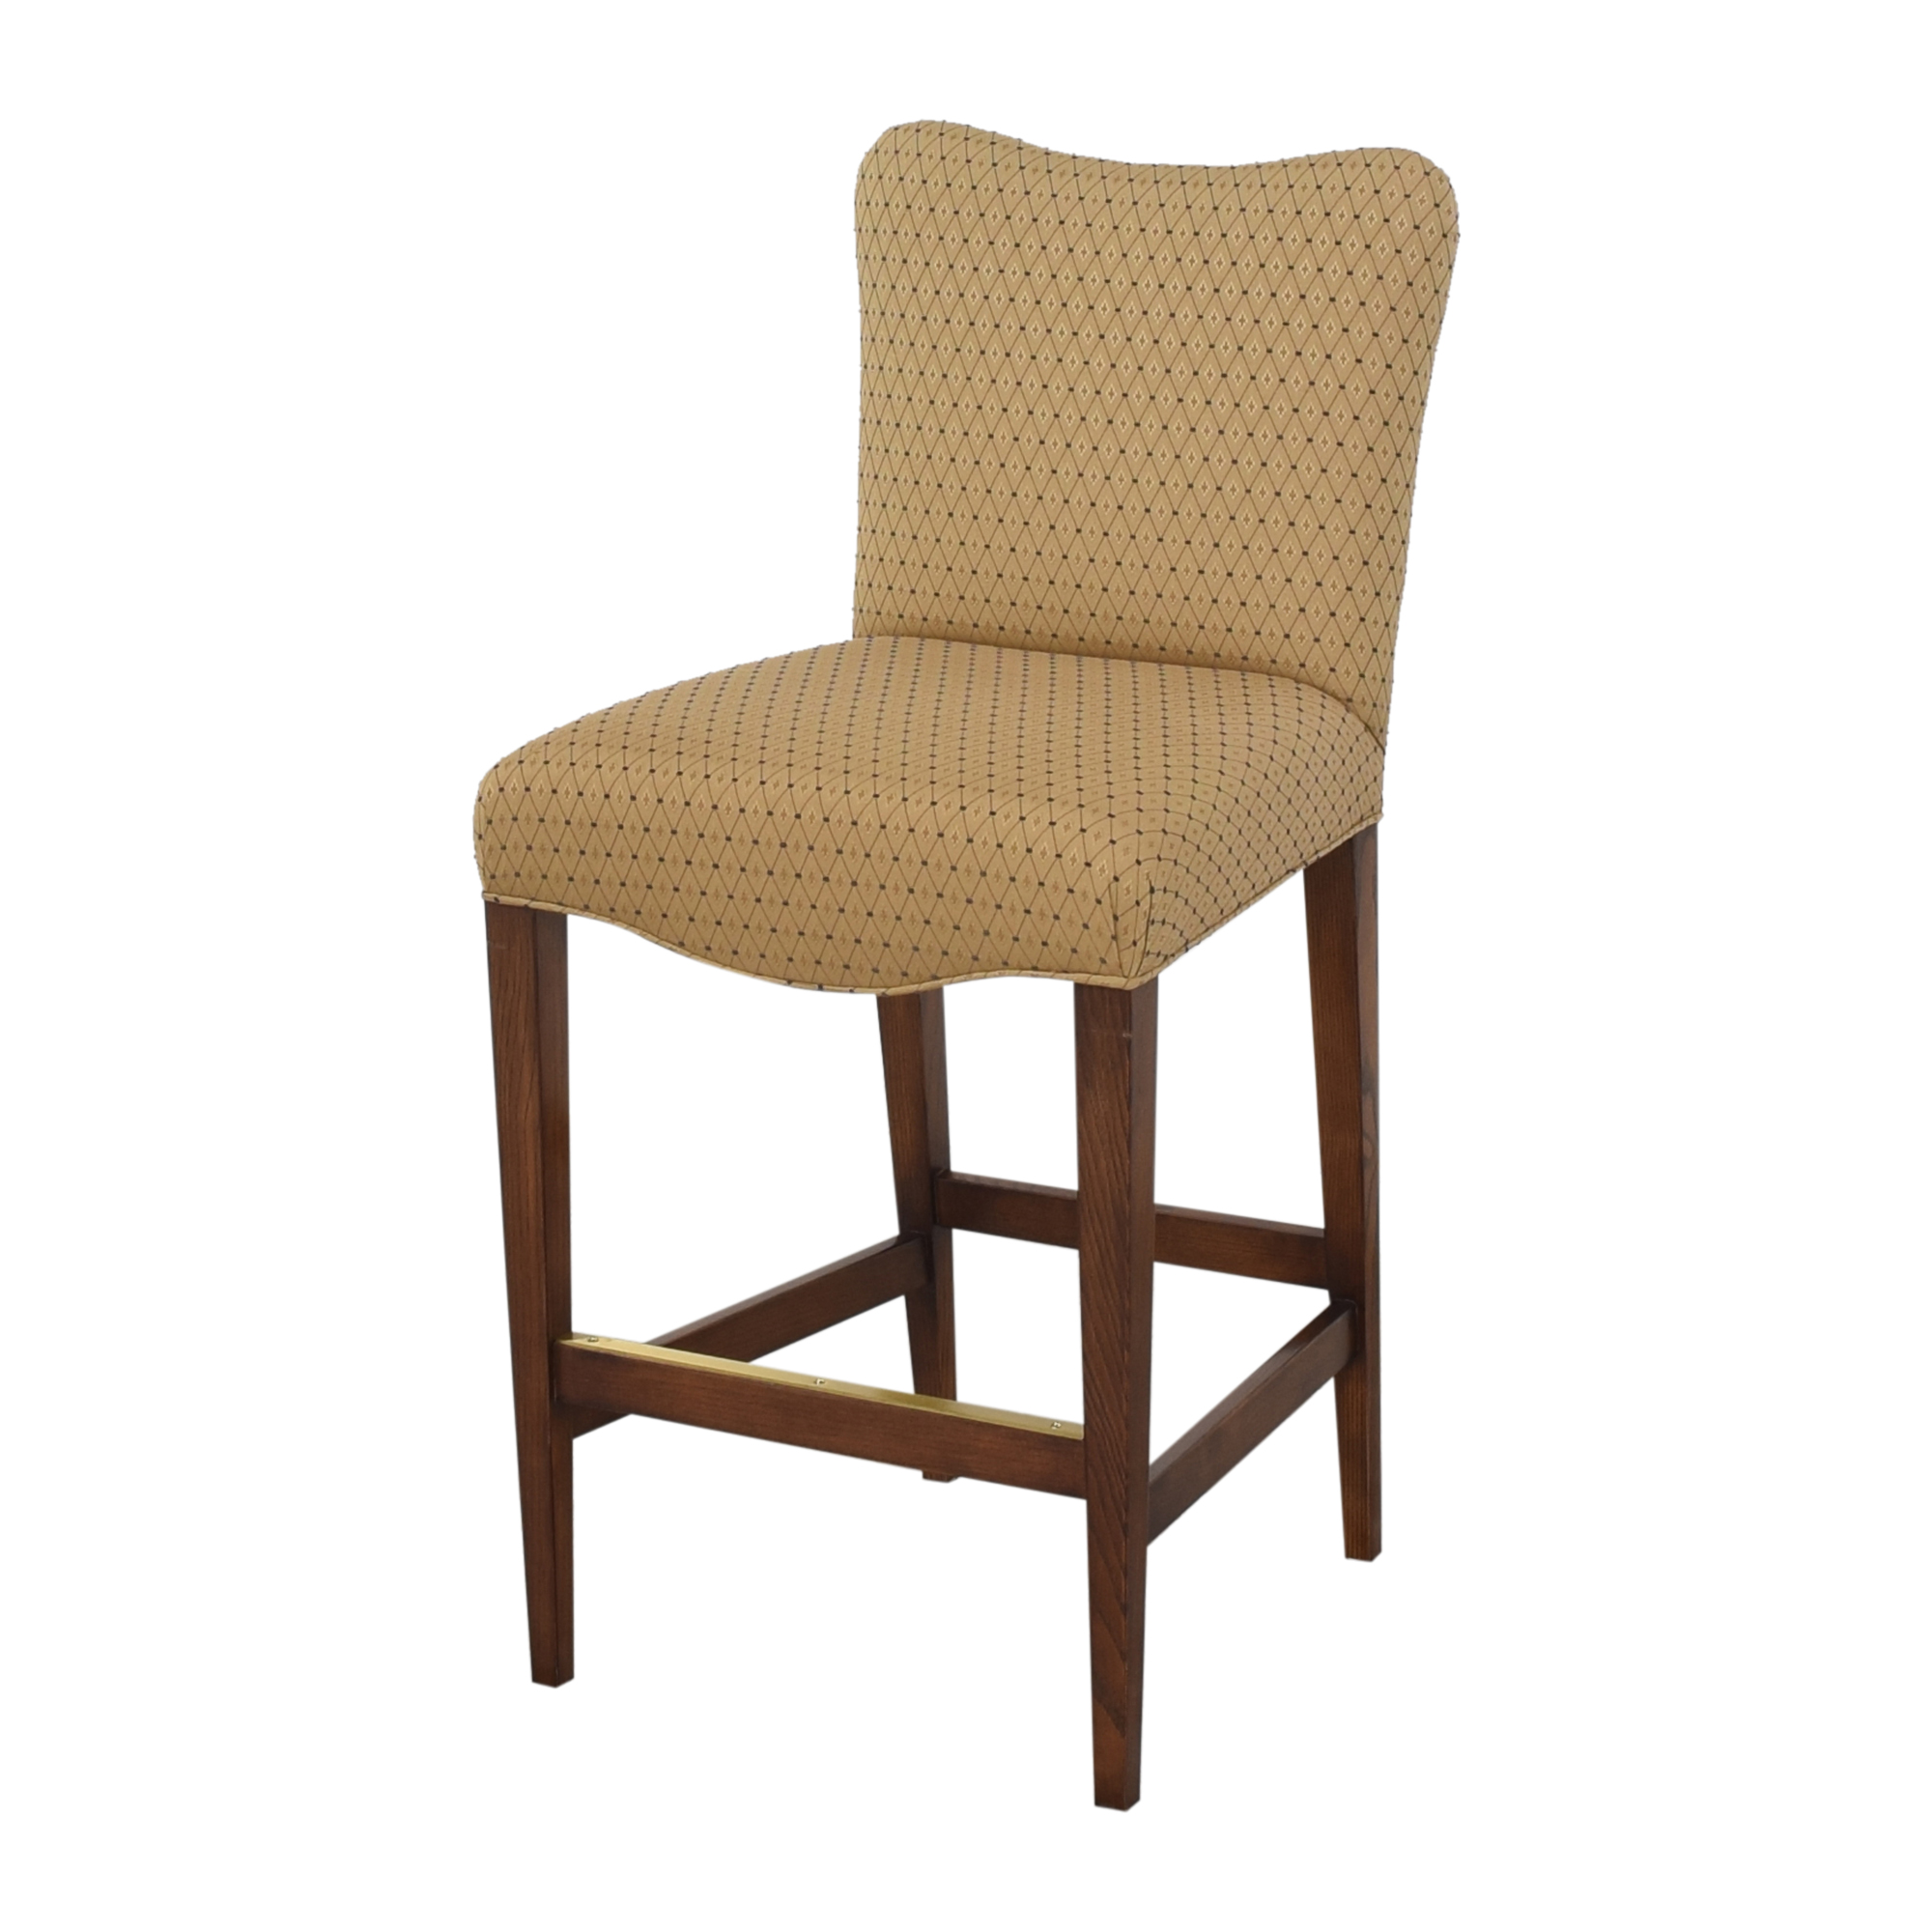 buy Swaim Upholstered Bar Stools Swaim Stools